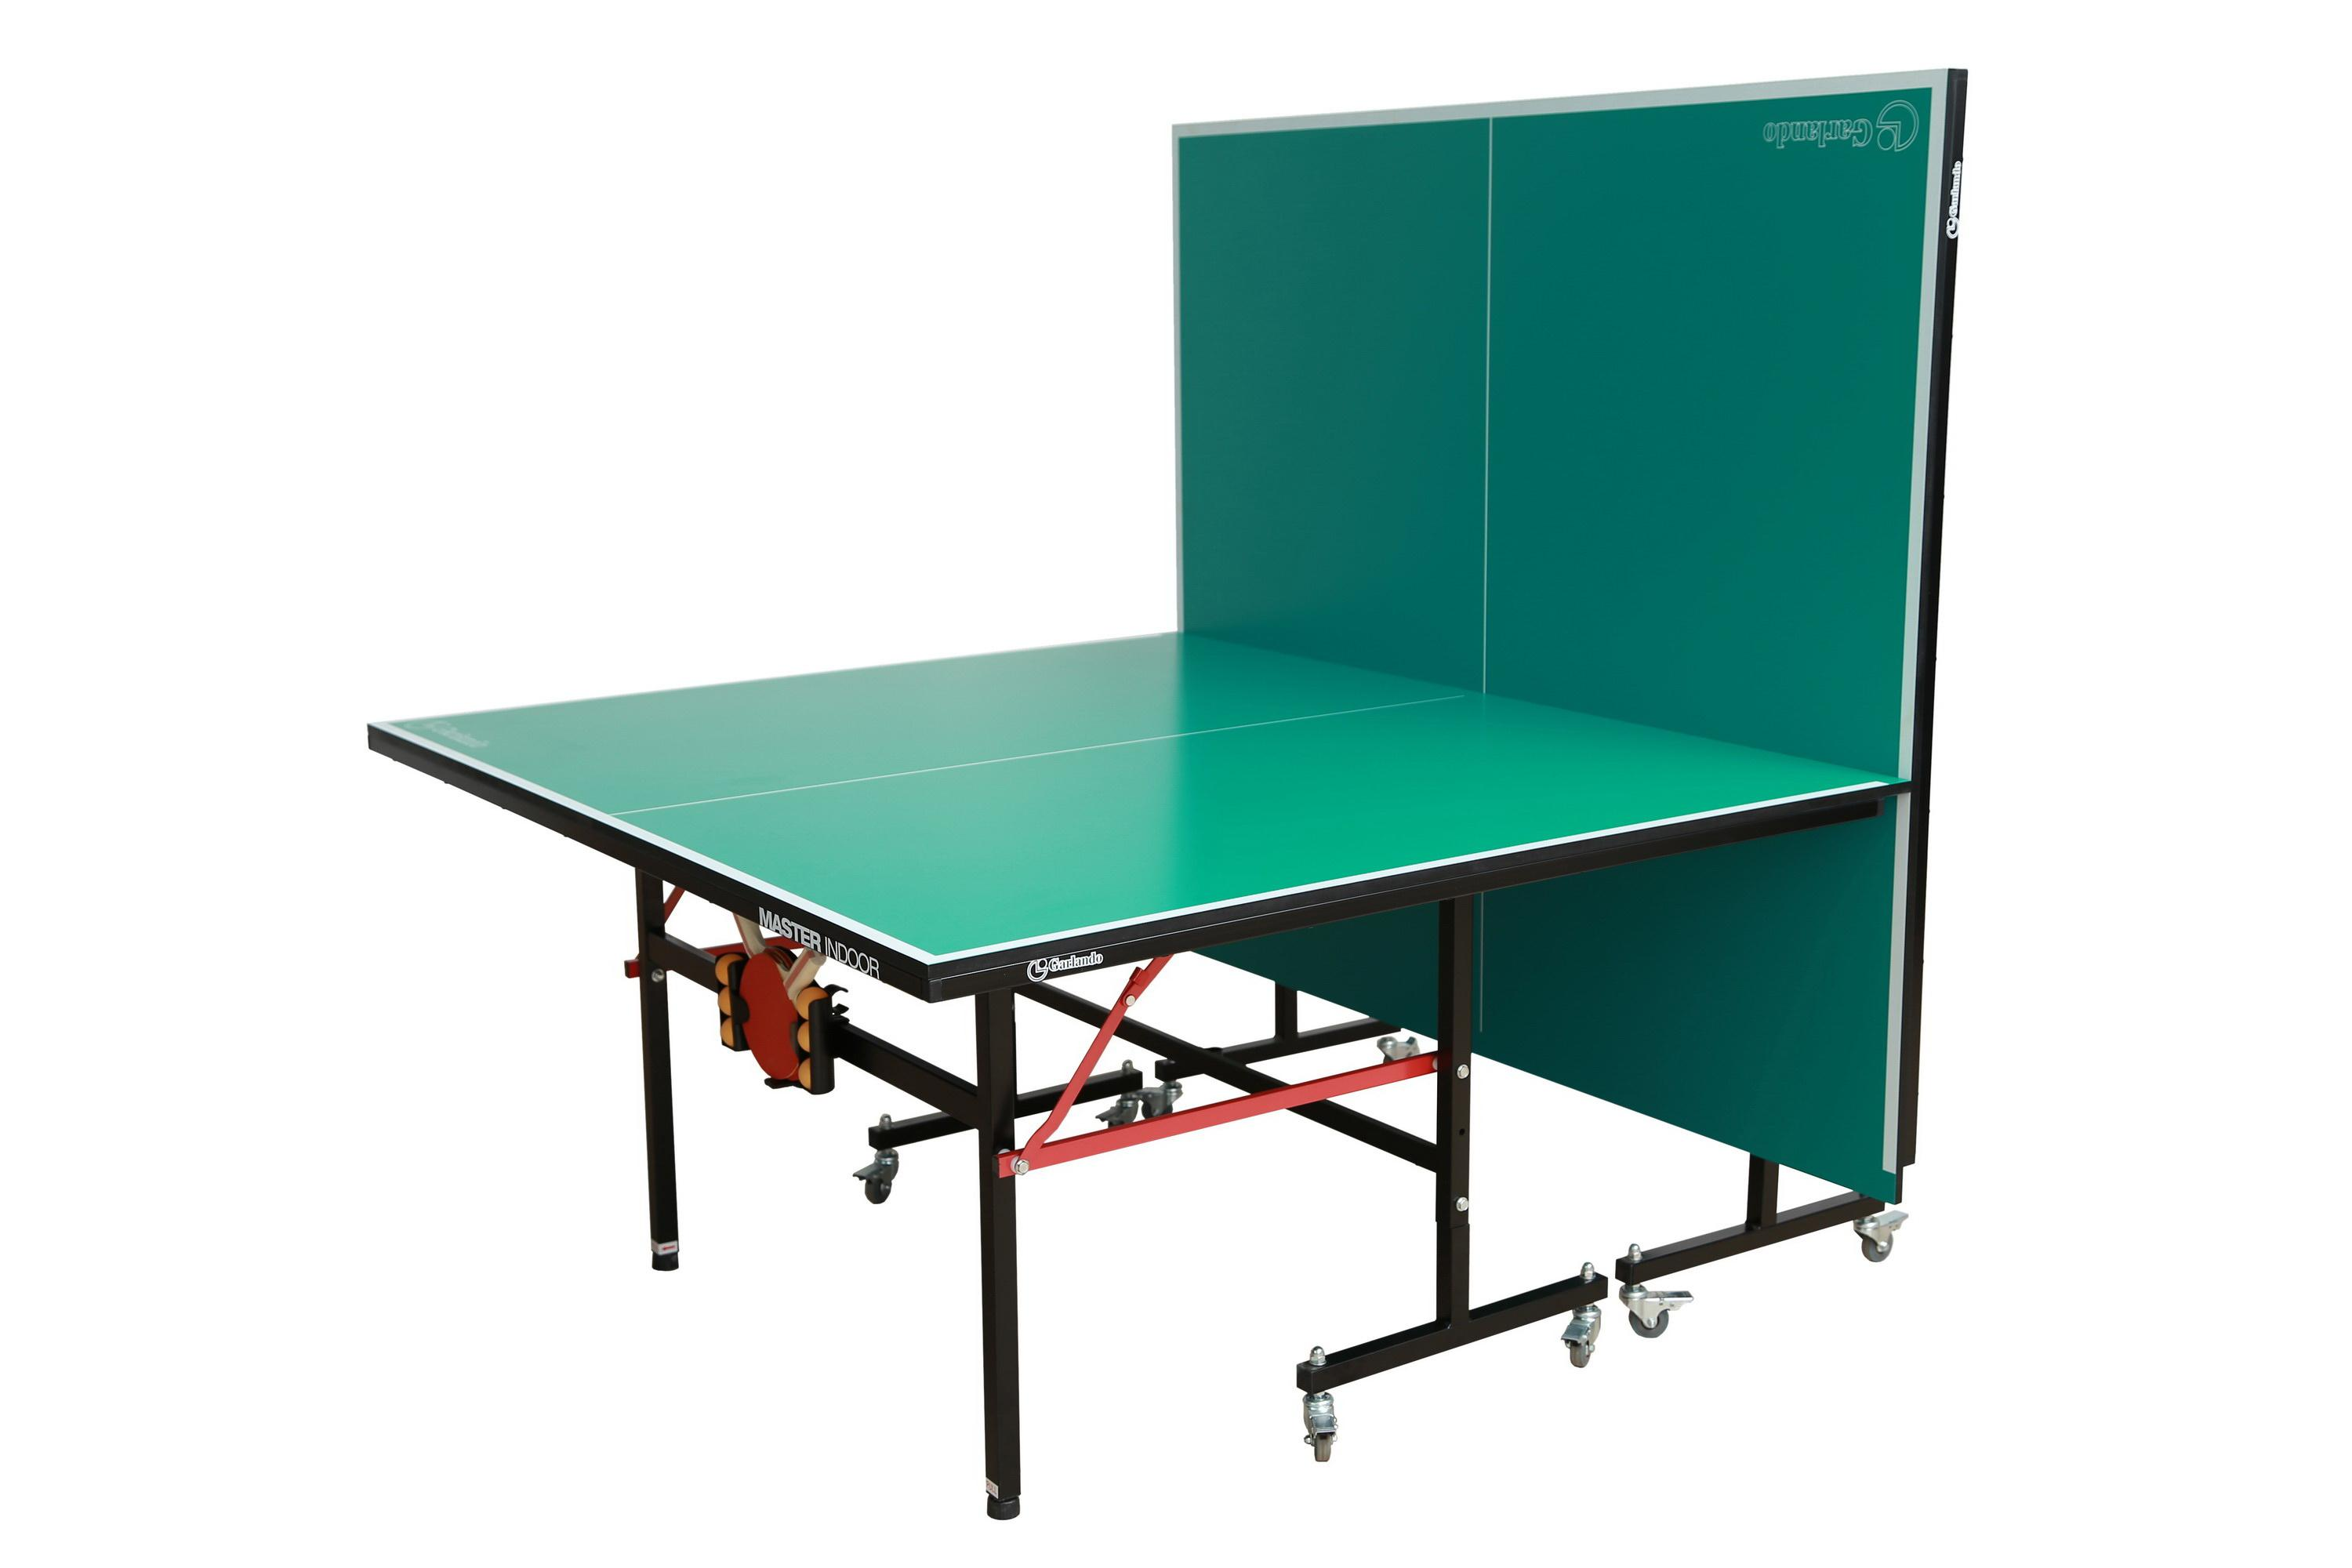 Ping pong table top - View Larger